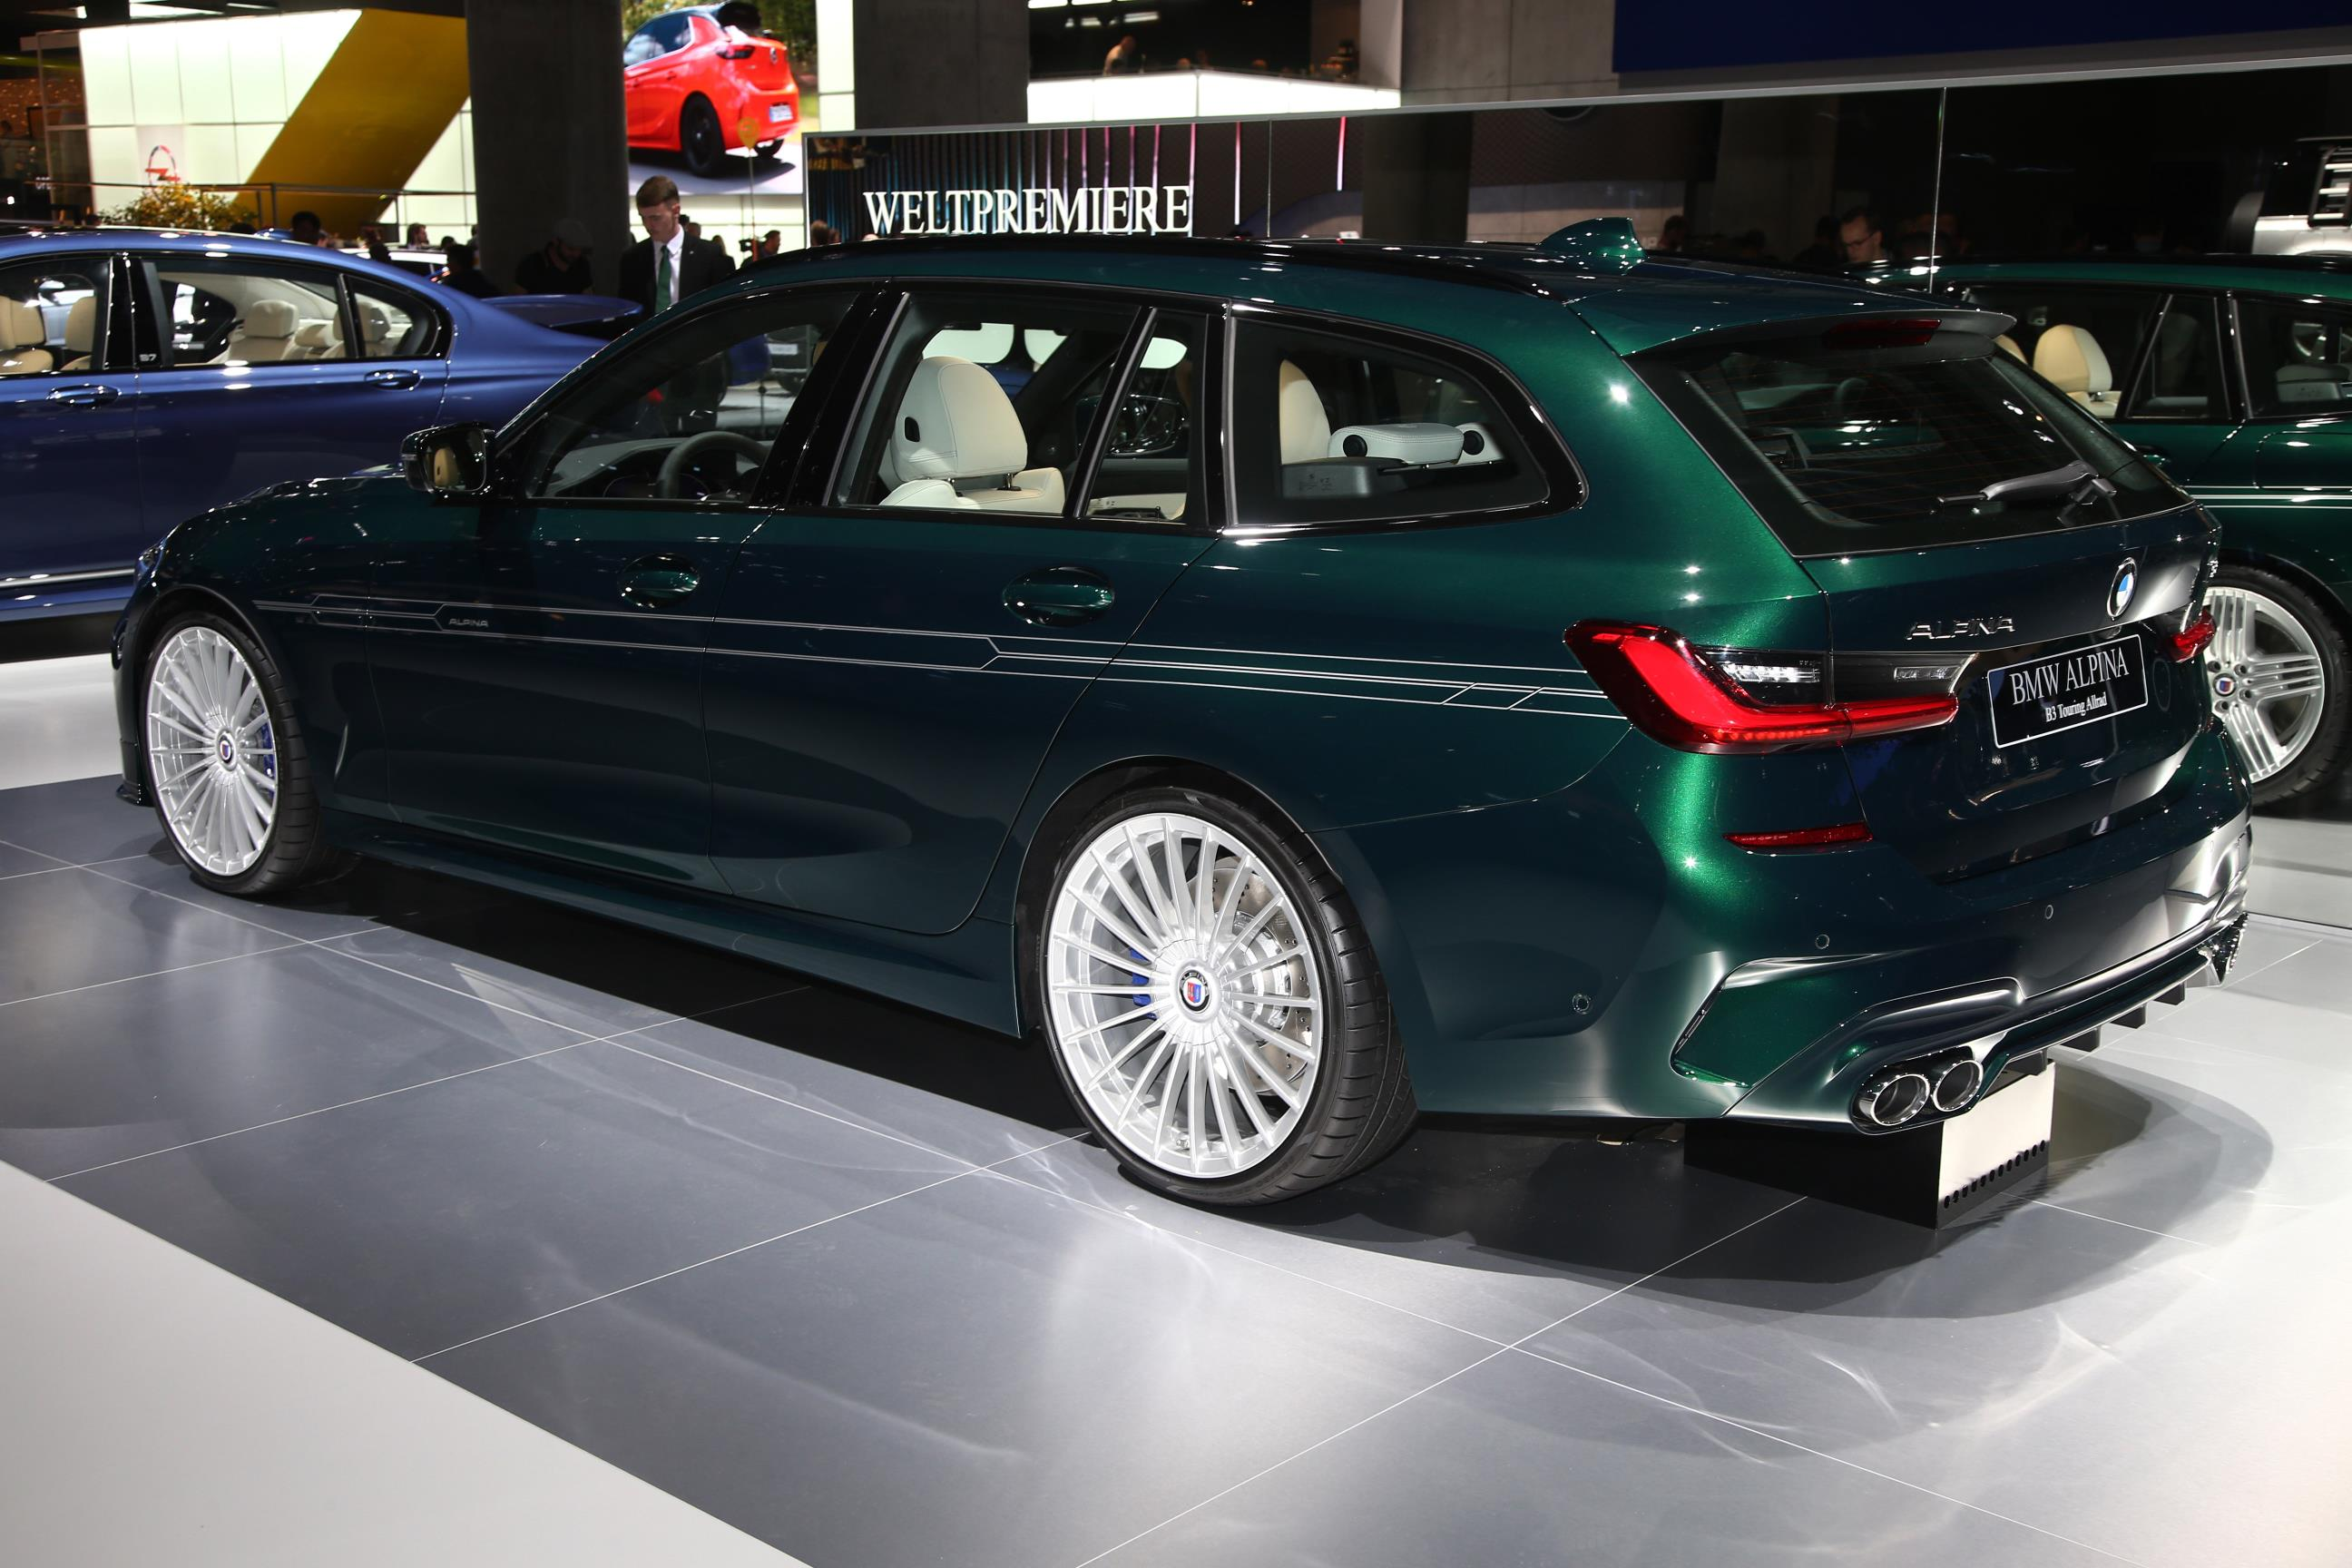 IAA Frankfurt 2019: Alpina B3 Biturbo Touring Live Photos